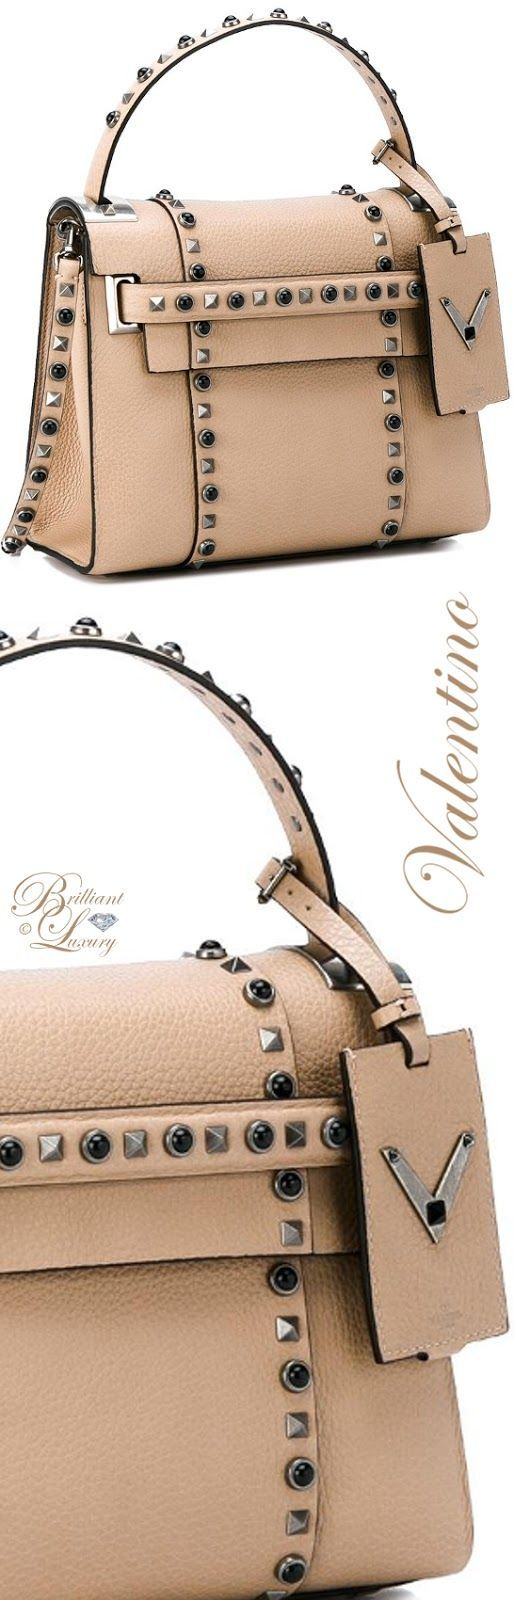 Brilliant Luxury by Emmy DE ♦ Valentino Garavani 'My Rockstud Rolling' Tote